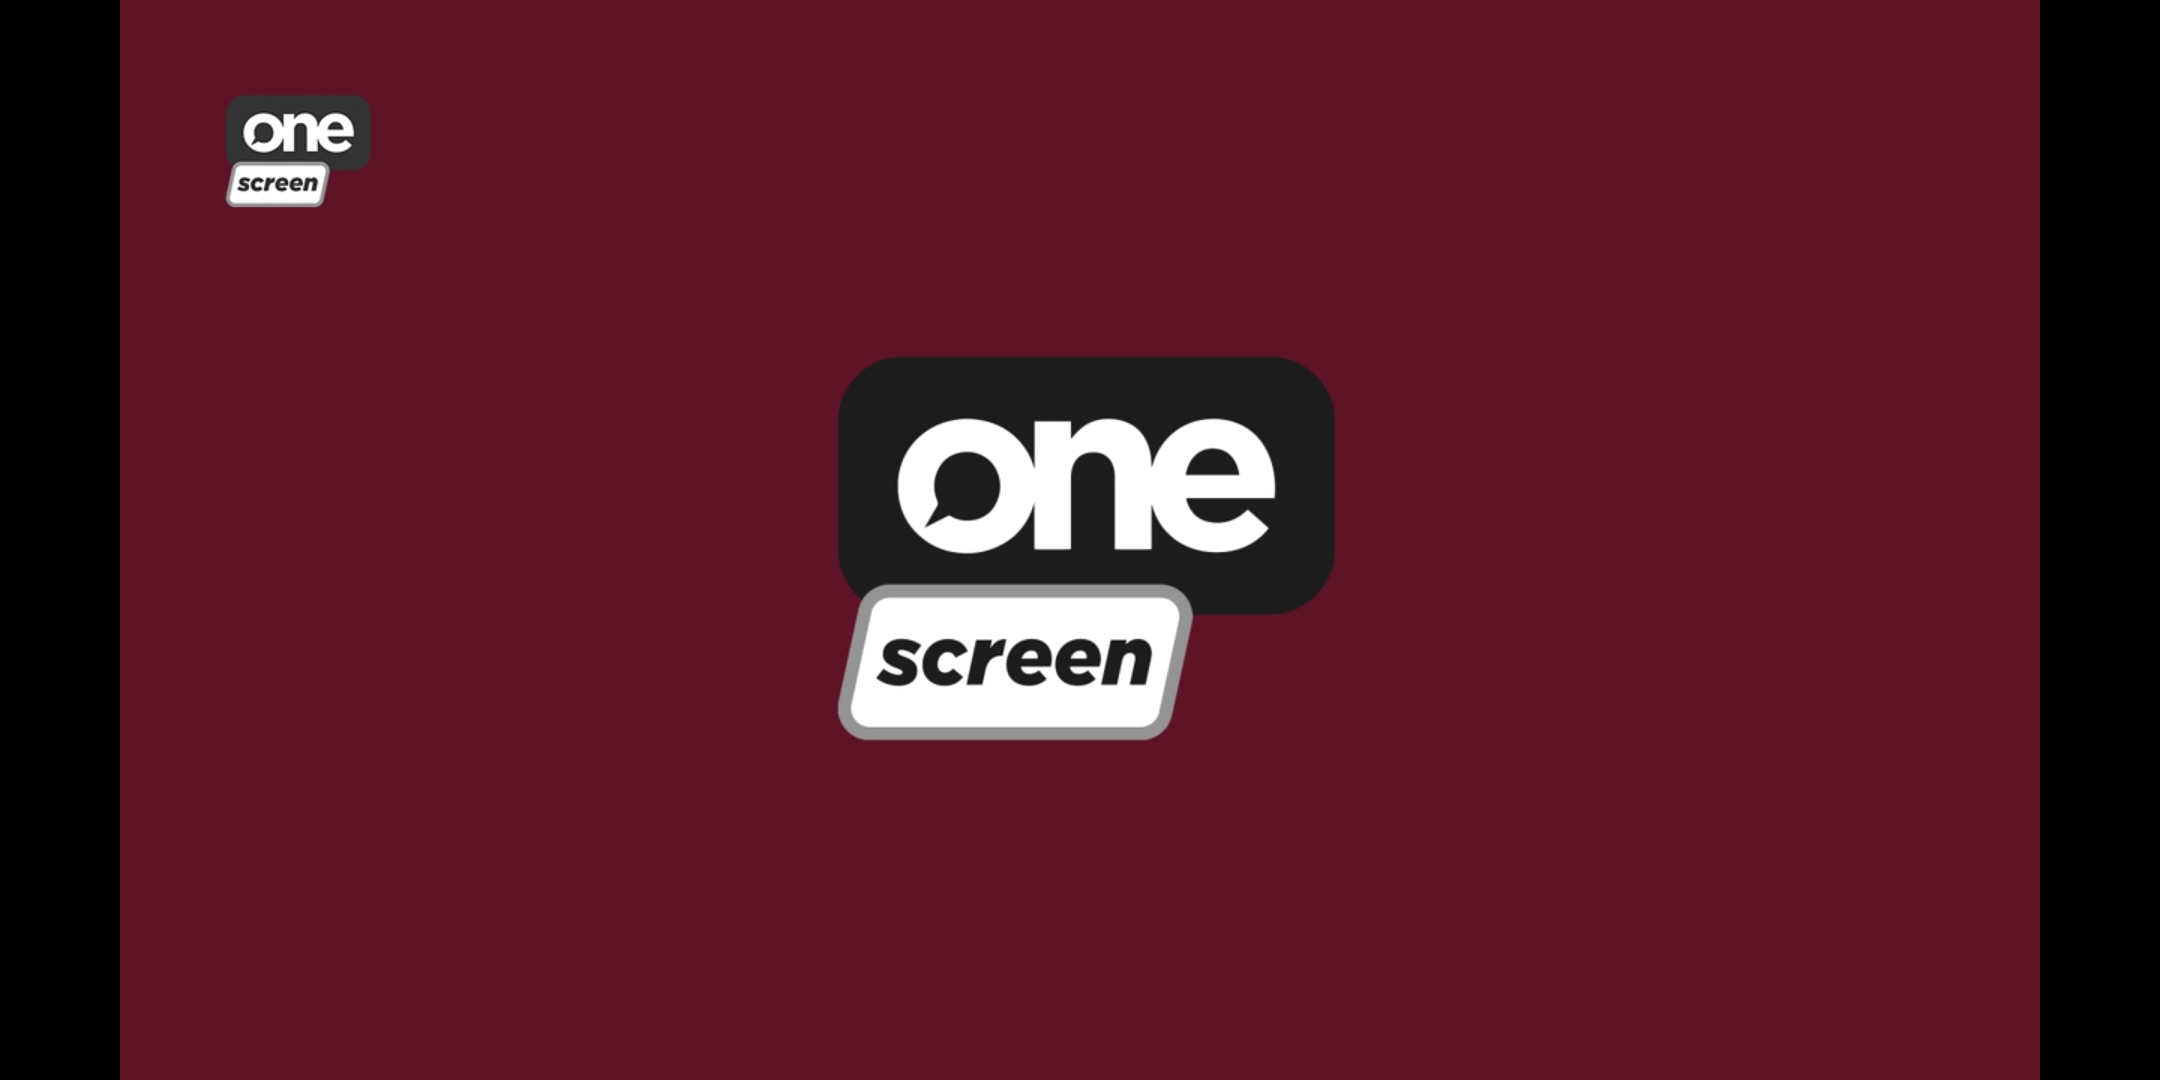 One Screen (TV channel)